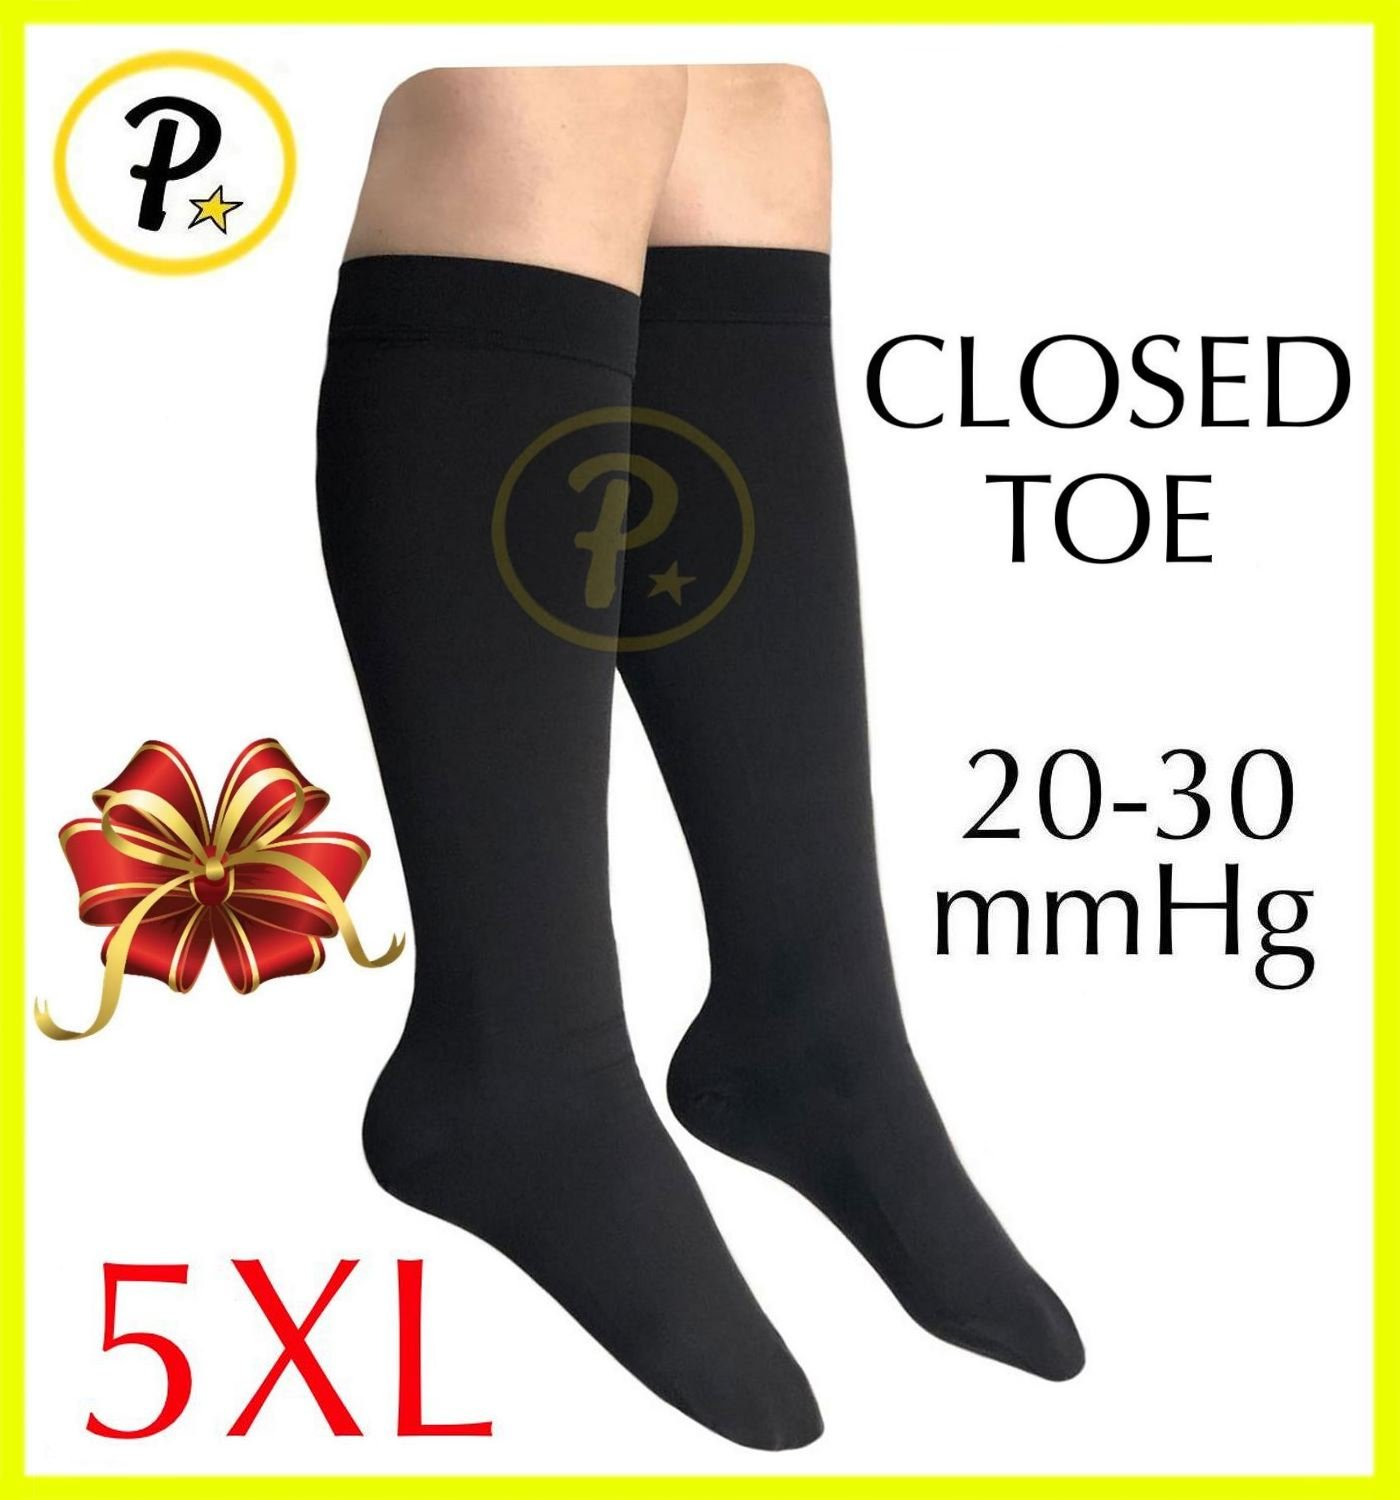 Presadee Closed Toe (BIG & TALL SUPER SIZE) Traditional 20-30 mmHg Compression Grade Swelling Veins Ankle Calf Leg Sock Support (Black, 5XL)